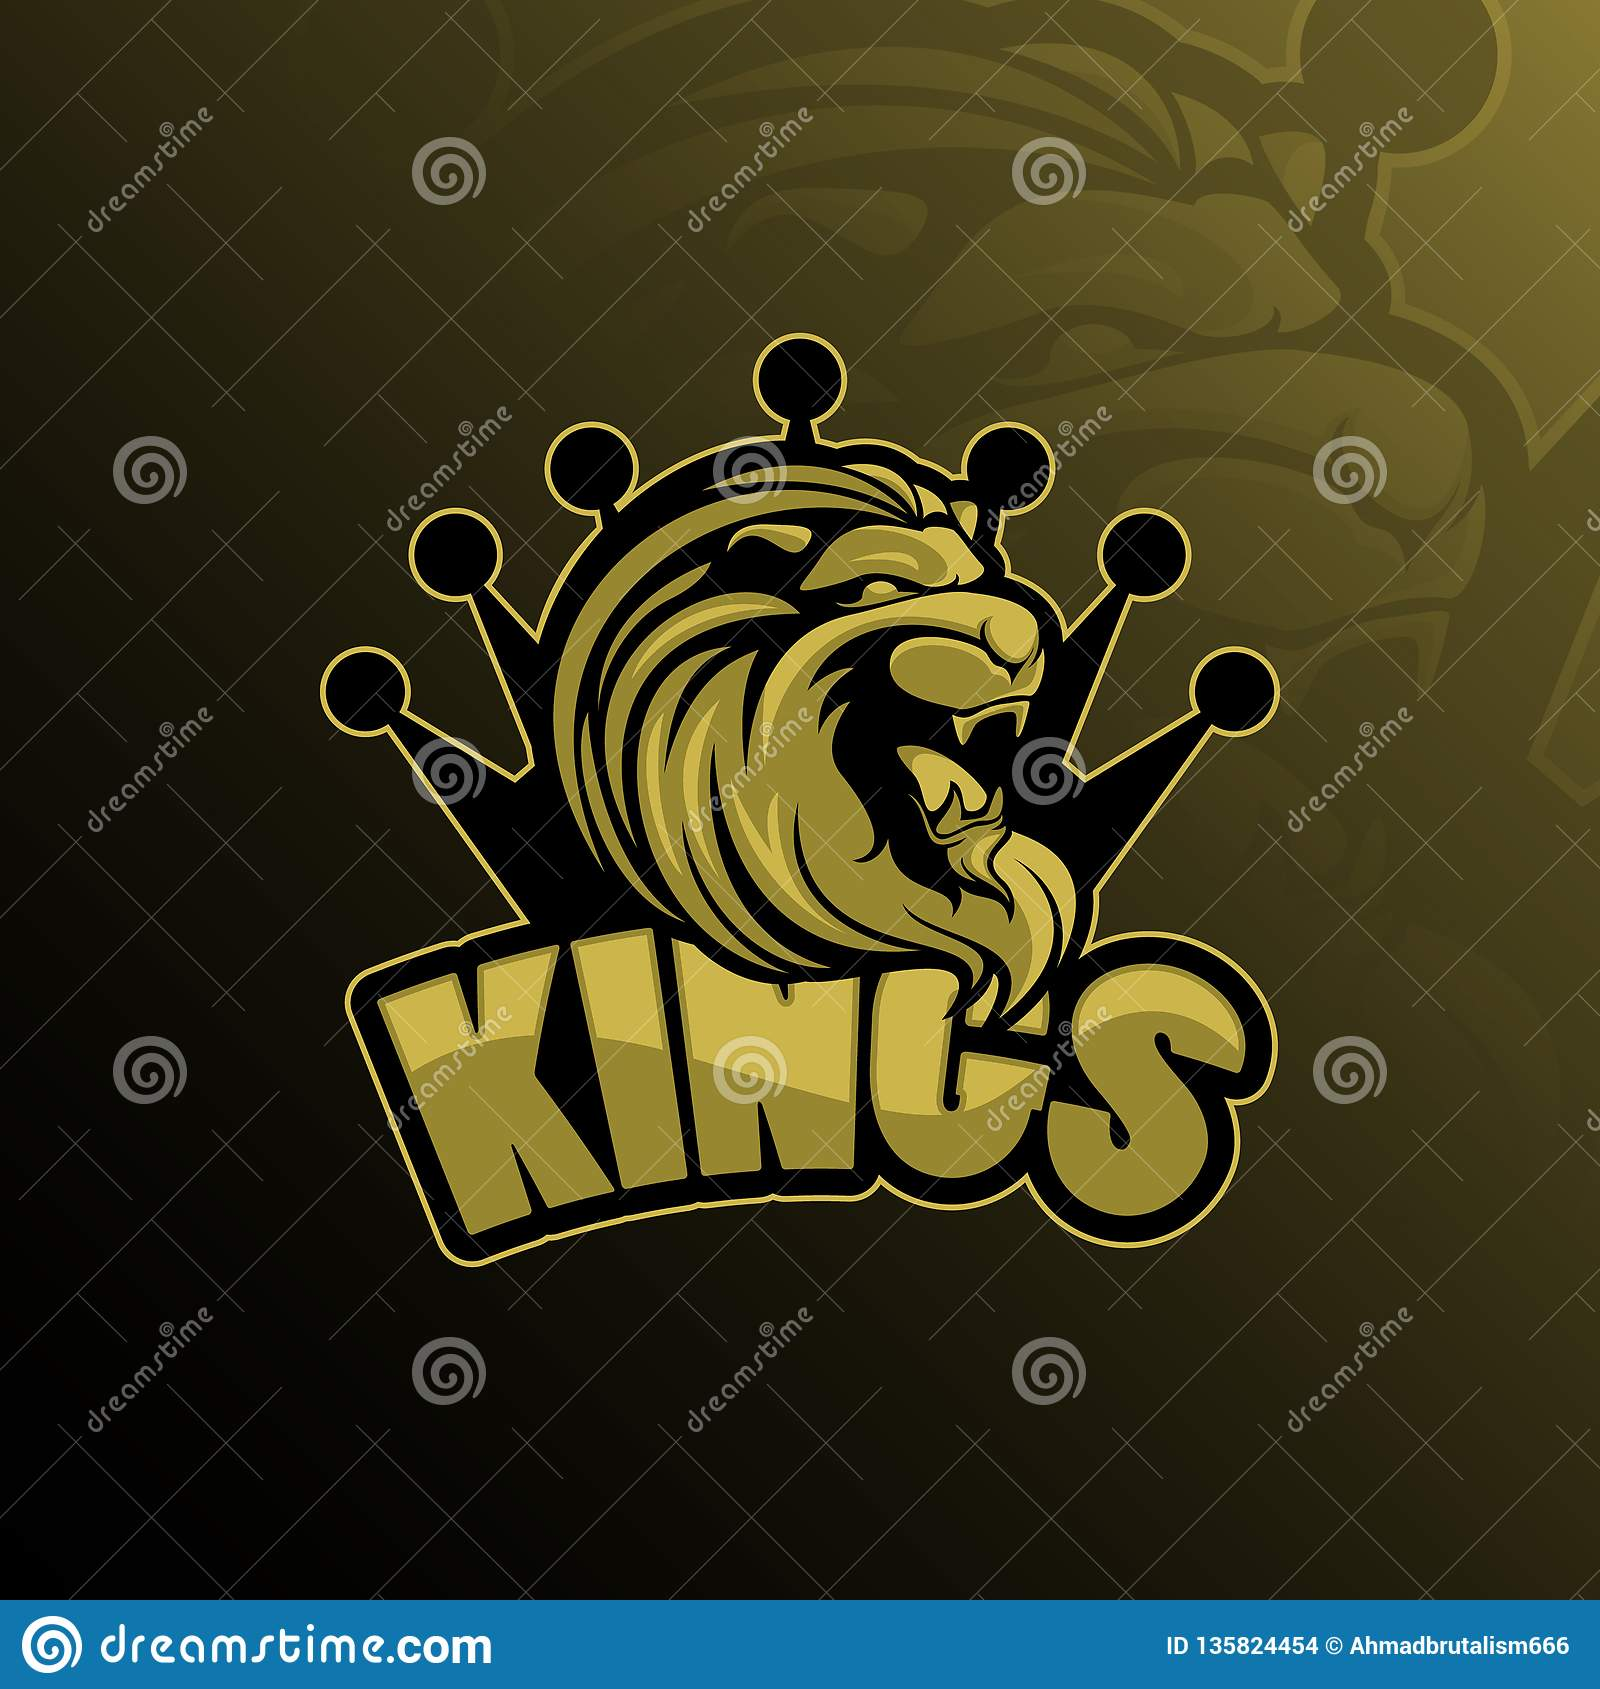 Lion king mascot logo design vector with modern illustration concept style for badge, emblem and tshirt printing. lion king